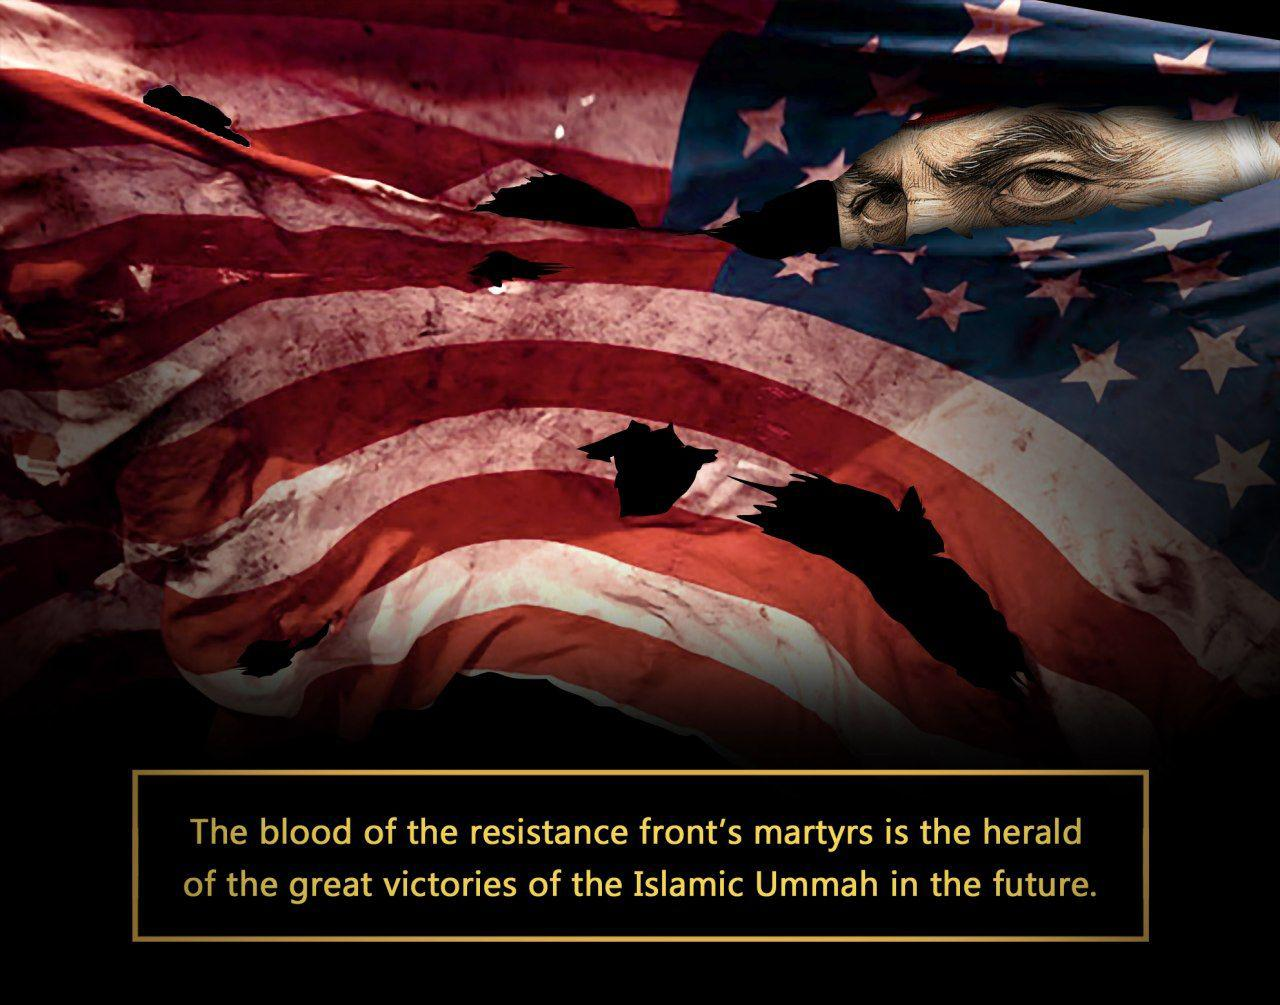 The blood of the resistance front's martyrs is the herald of the great victories of the Islamic Ummah in the future